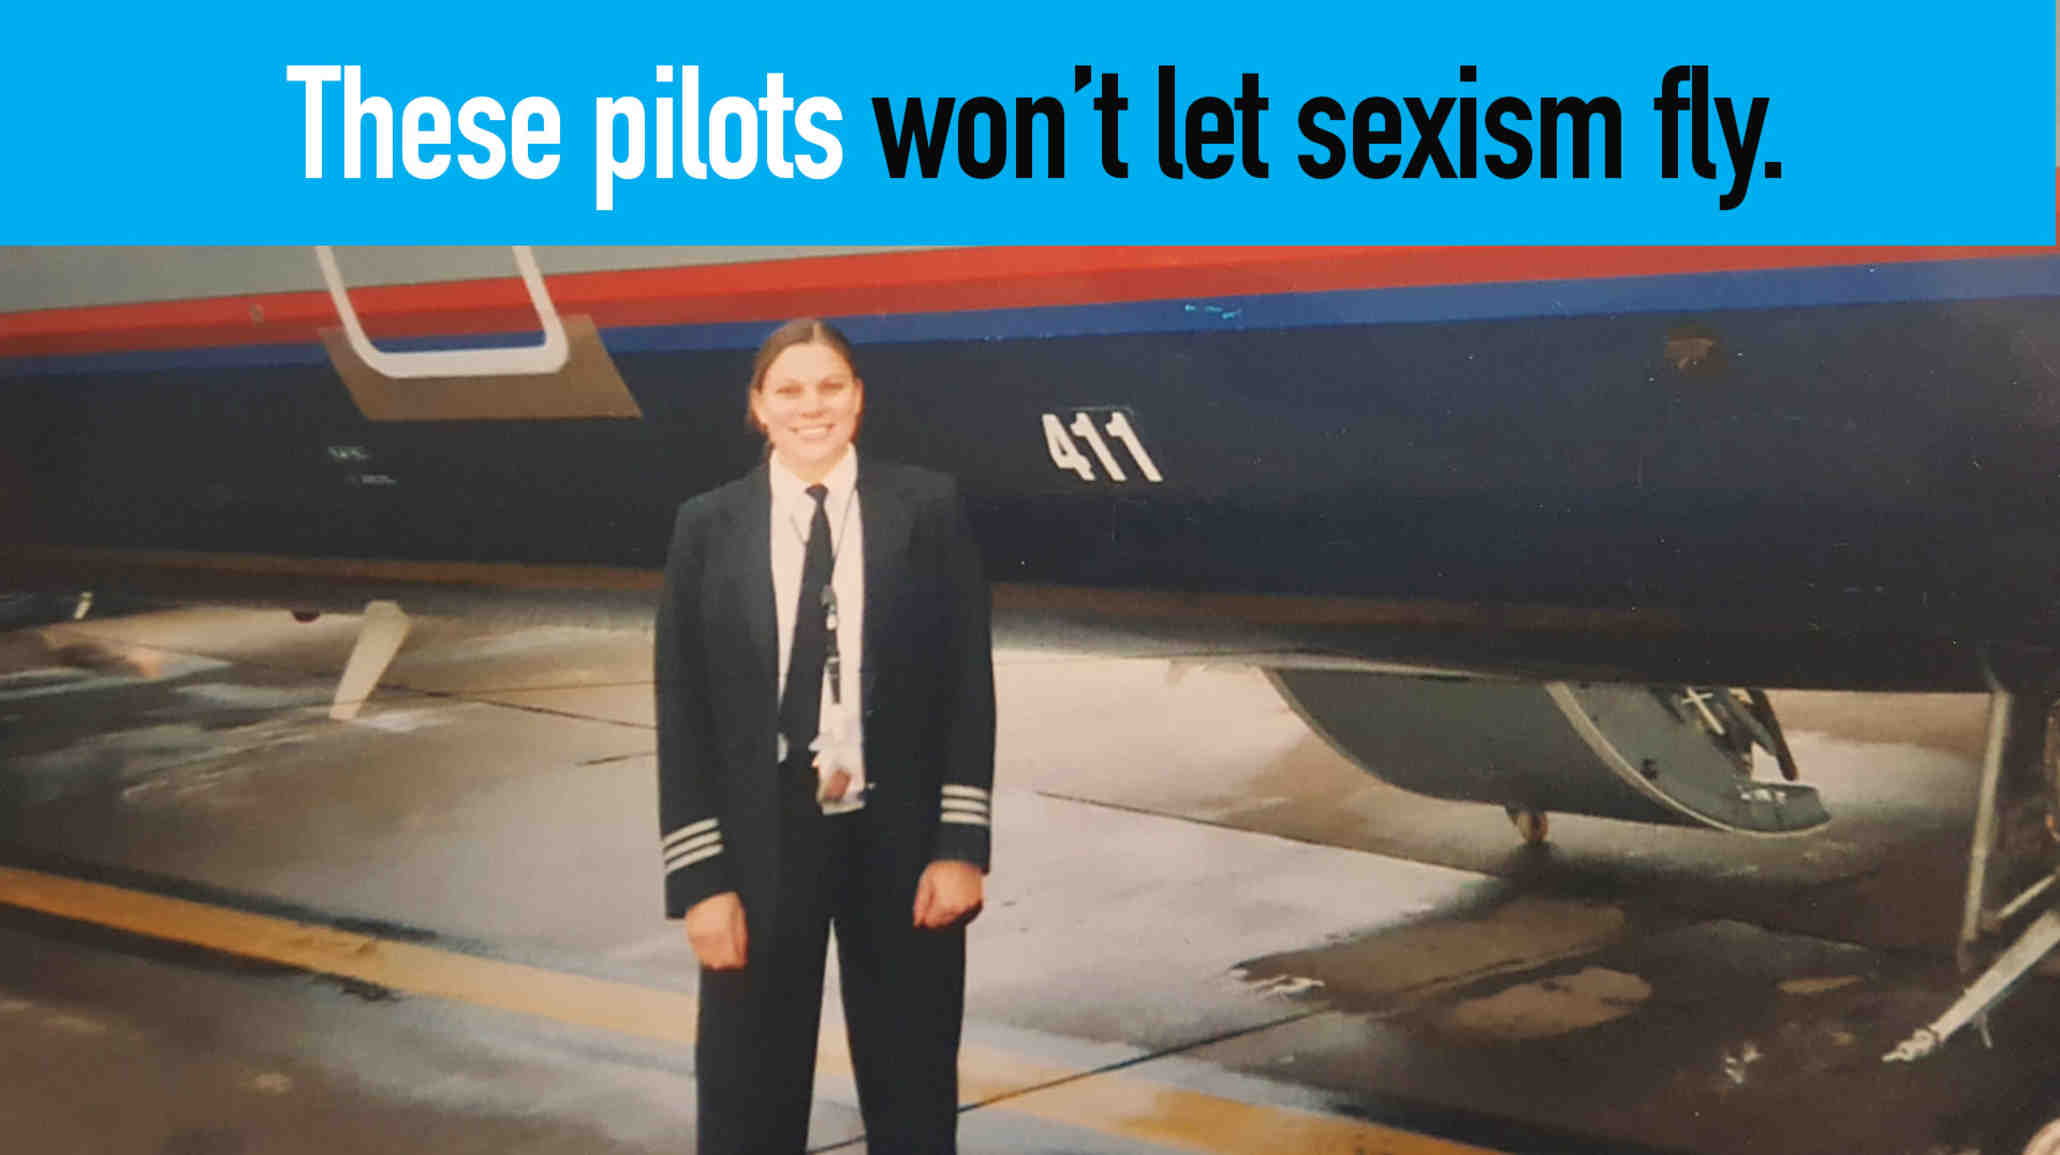 These pilots won't let sexism fly  | American Civil